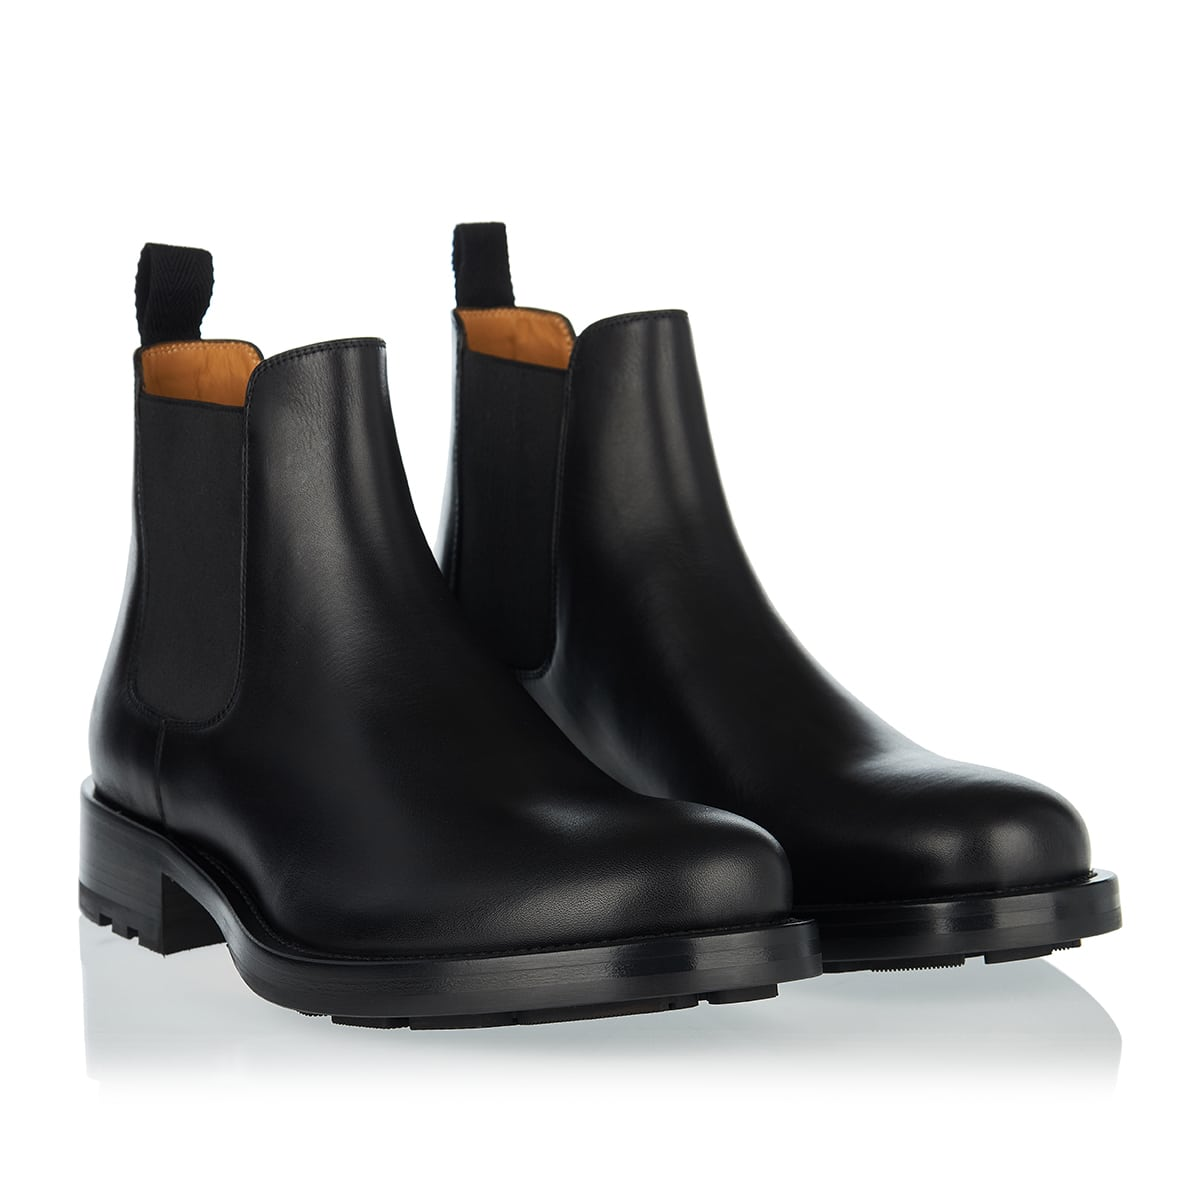 Maxi Stud leather Chelsea boots